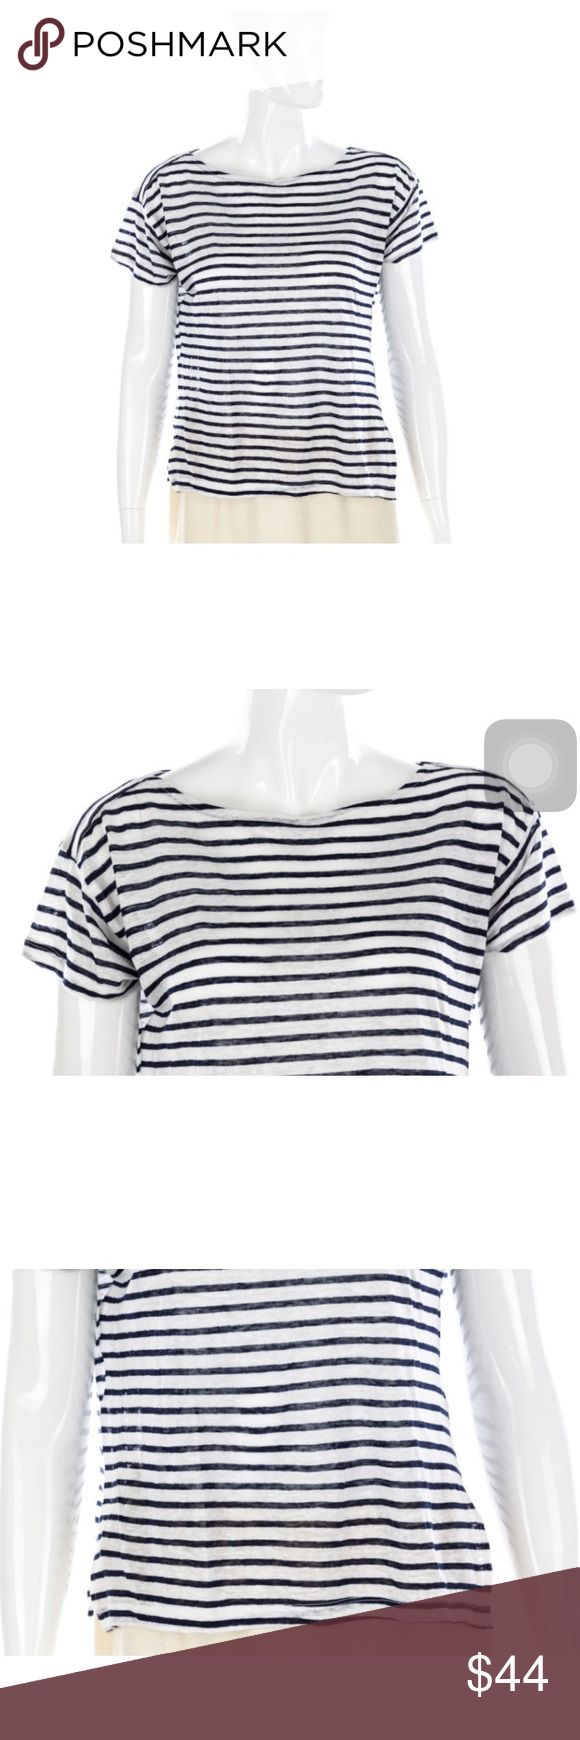 """Band of Outsiders White Navy Striped T-shirt Top Band of Outsiders White Navy Striped T-shirt Top - Size 0 Size 0 Linen (stretch) Love text print  Boat neck  Short sleeves Semi sheer  Striped print Vents at sides Boxy crop style  Condition: No flaws. (Second hand item-has been worn by previous owner).  Measurements  Length: 21.5"""" Chest: 40"""" Waist: 40""""                                100% Authenticity Guarantee Brand Of Outsiders Tops"""